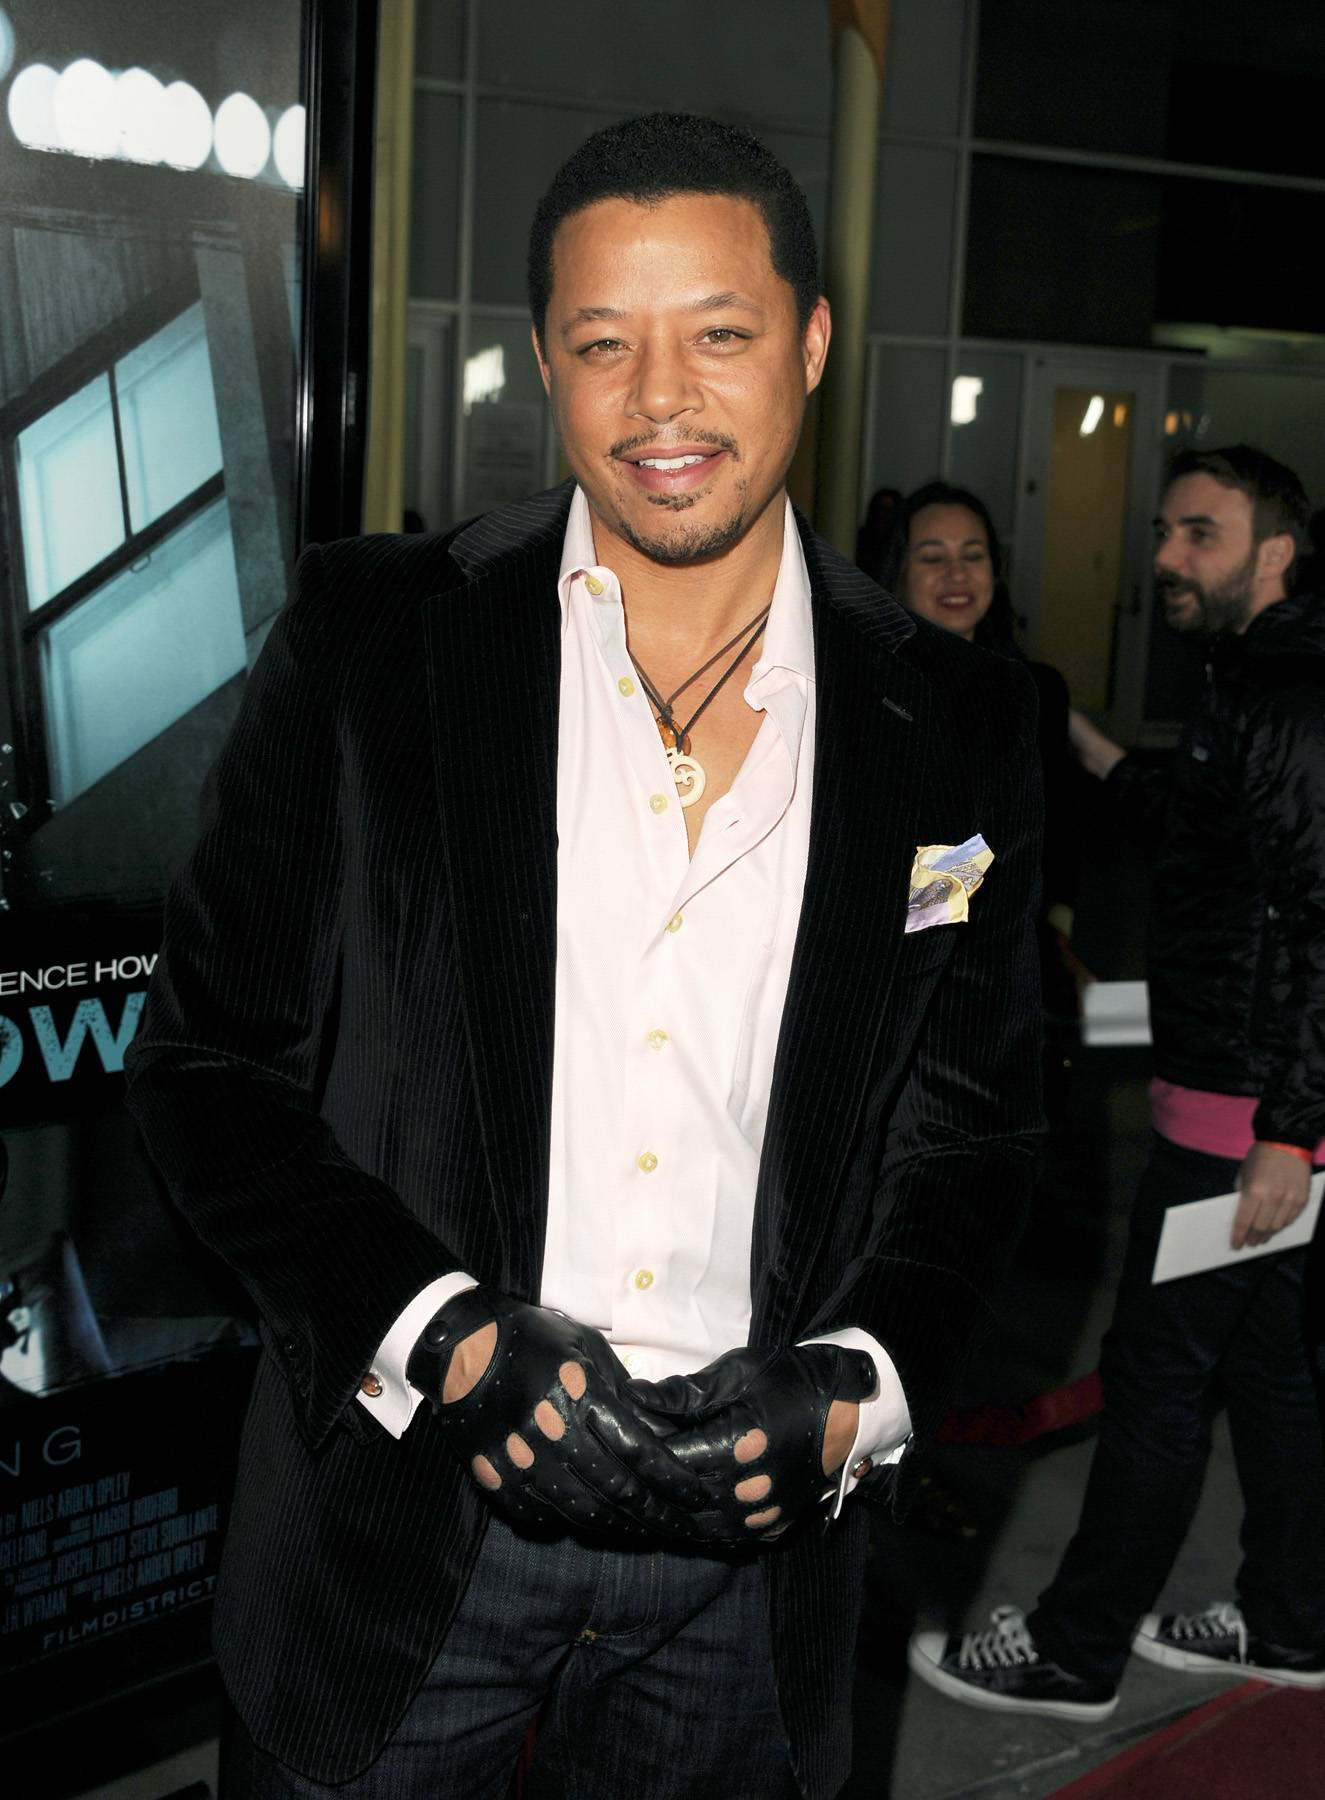 022713-celebs-out-terrence-howard.jpg